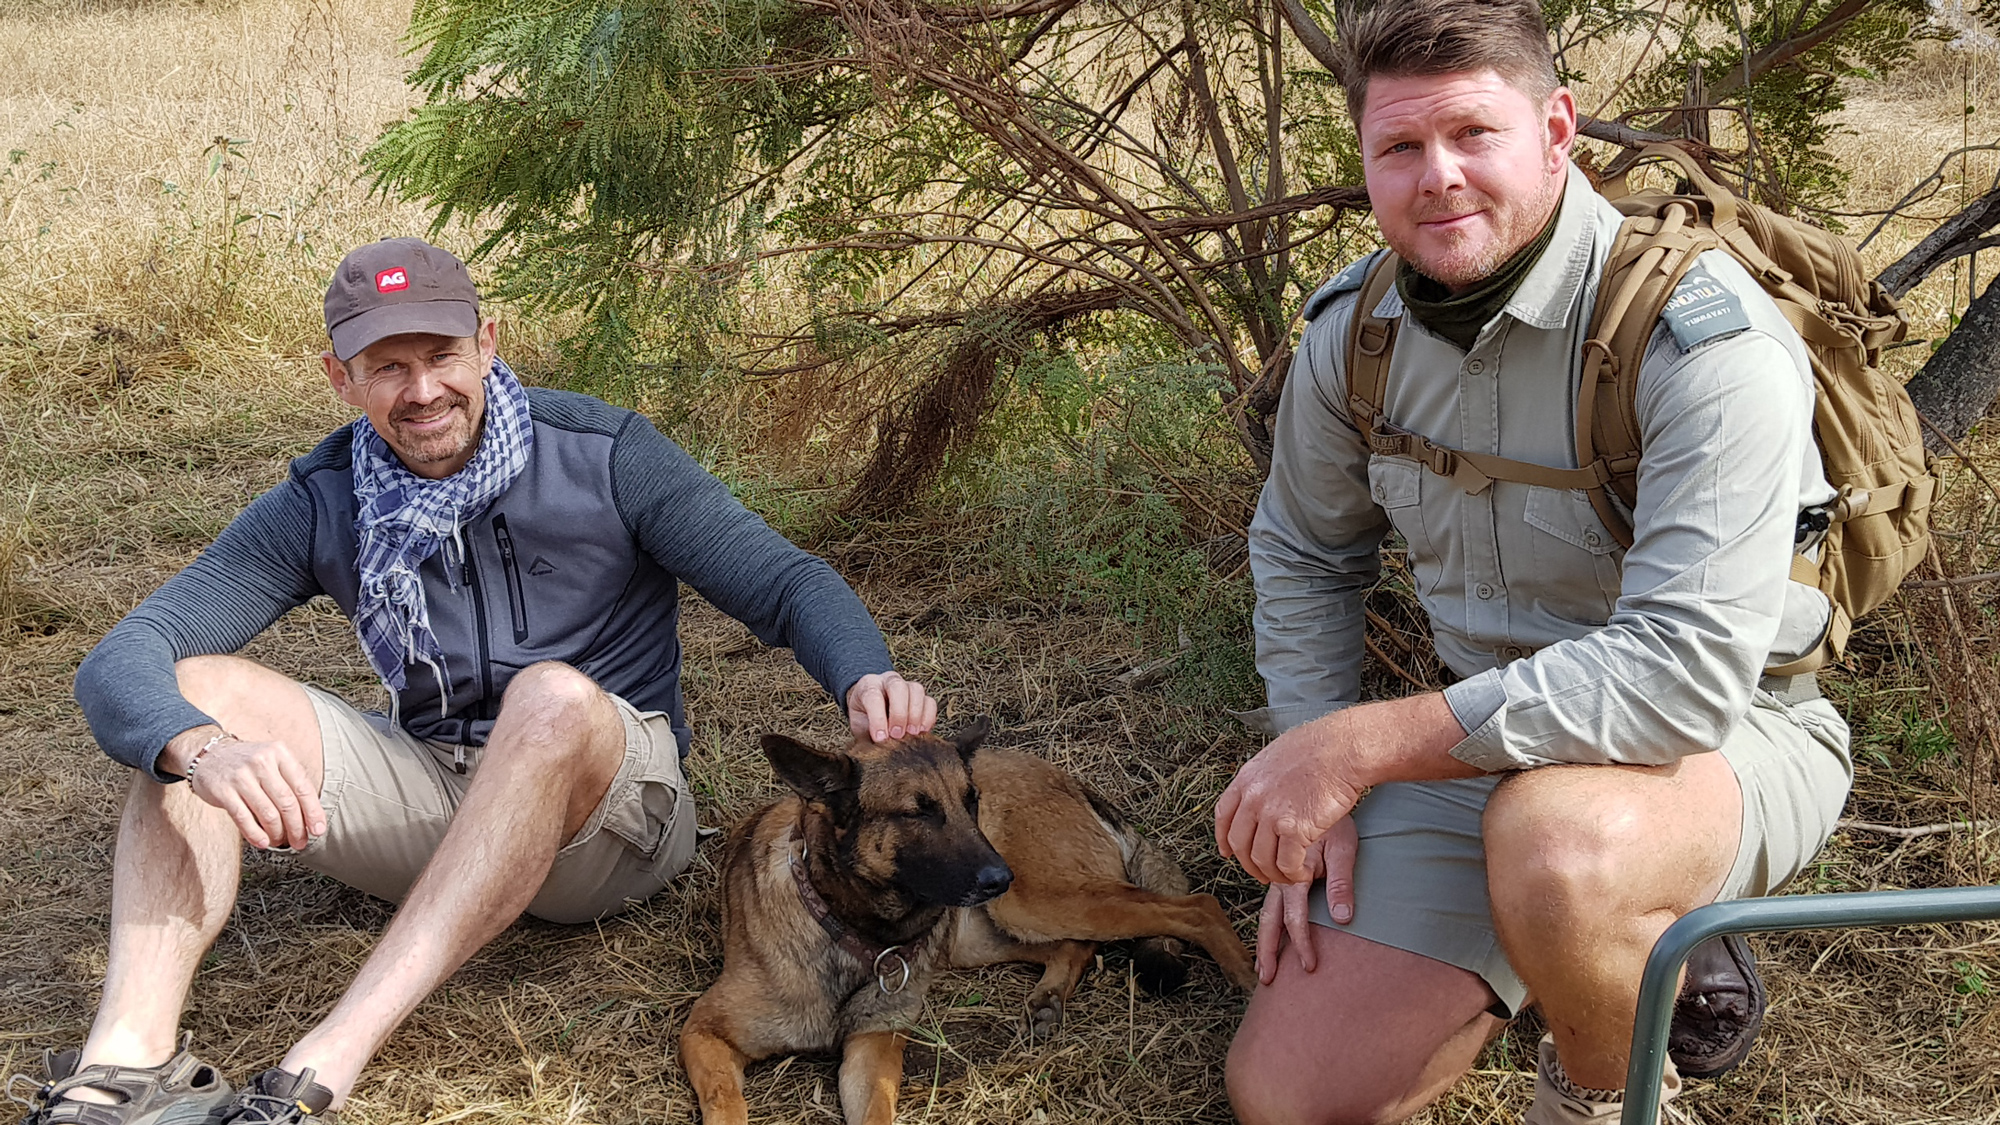 Head guide and guest with K9 anti-poaching dog